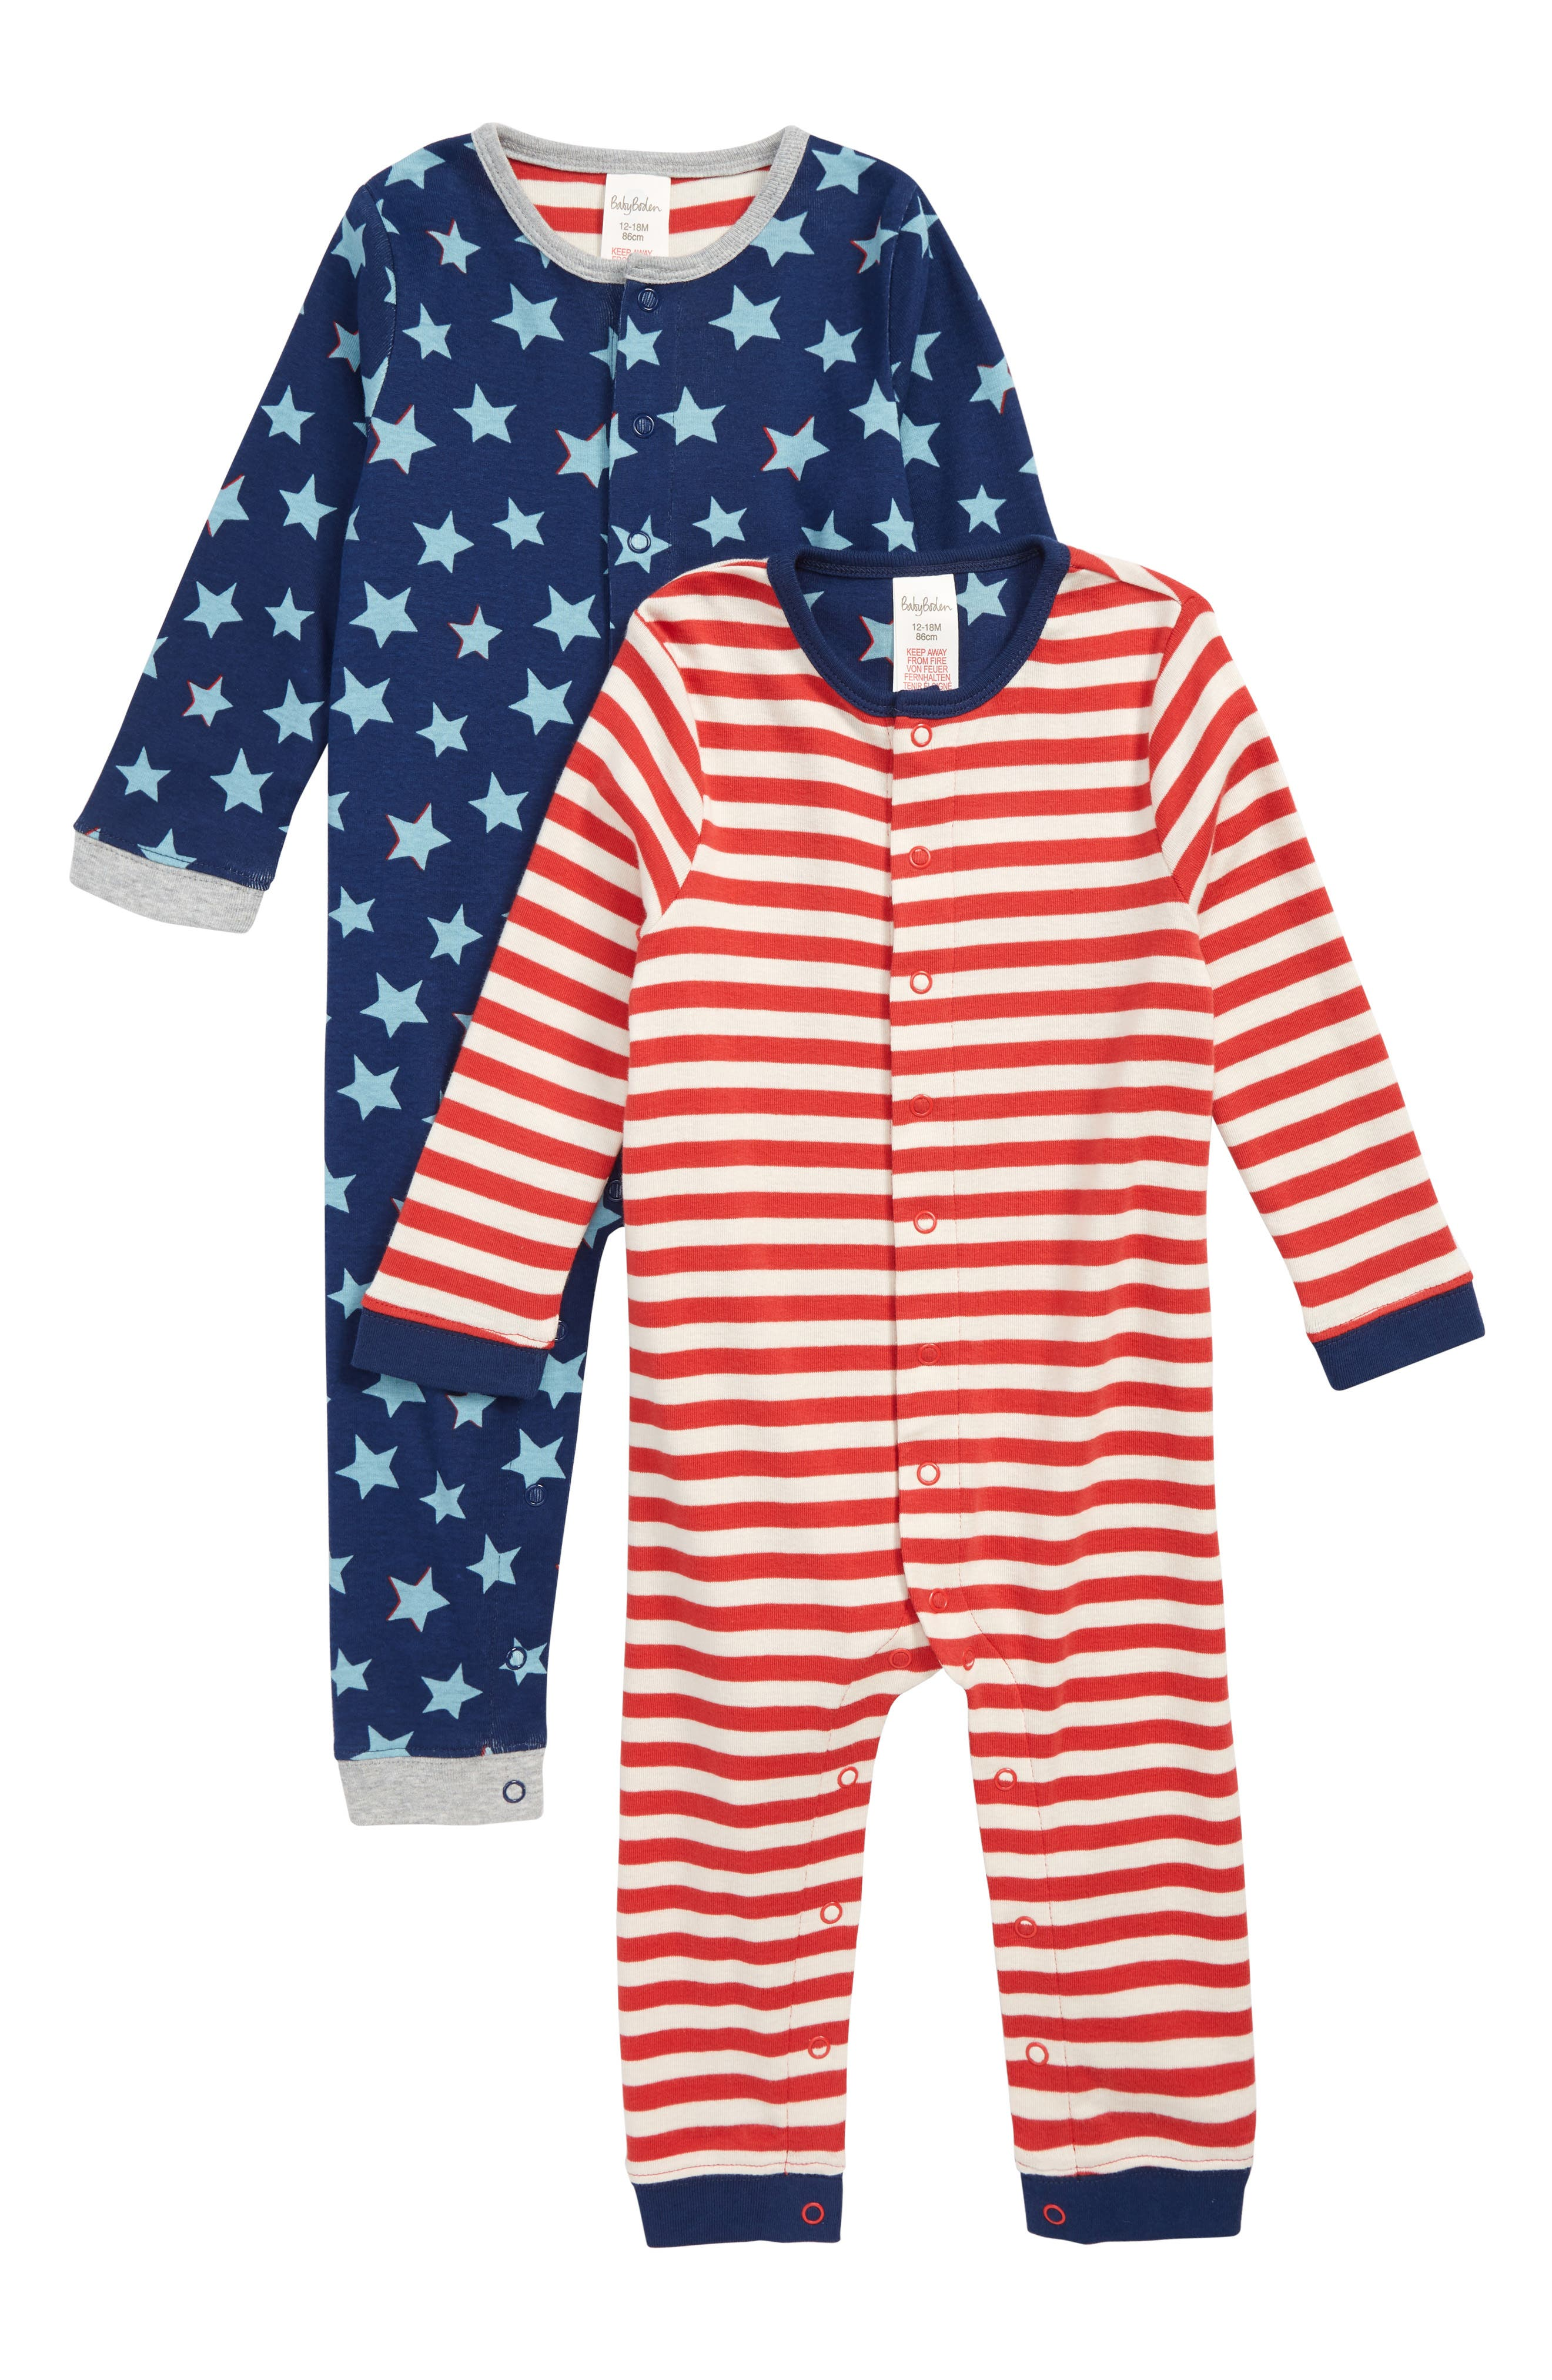 MINI BODEN,                             2-Pack Rompers,                             Main thumbnail 1, color,                             404